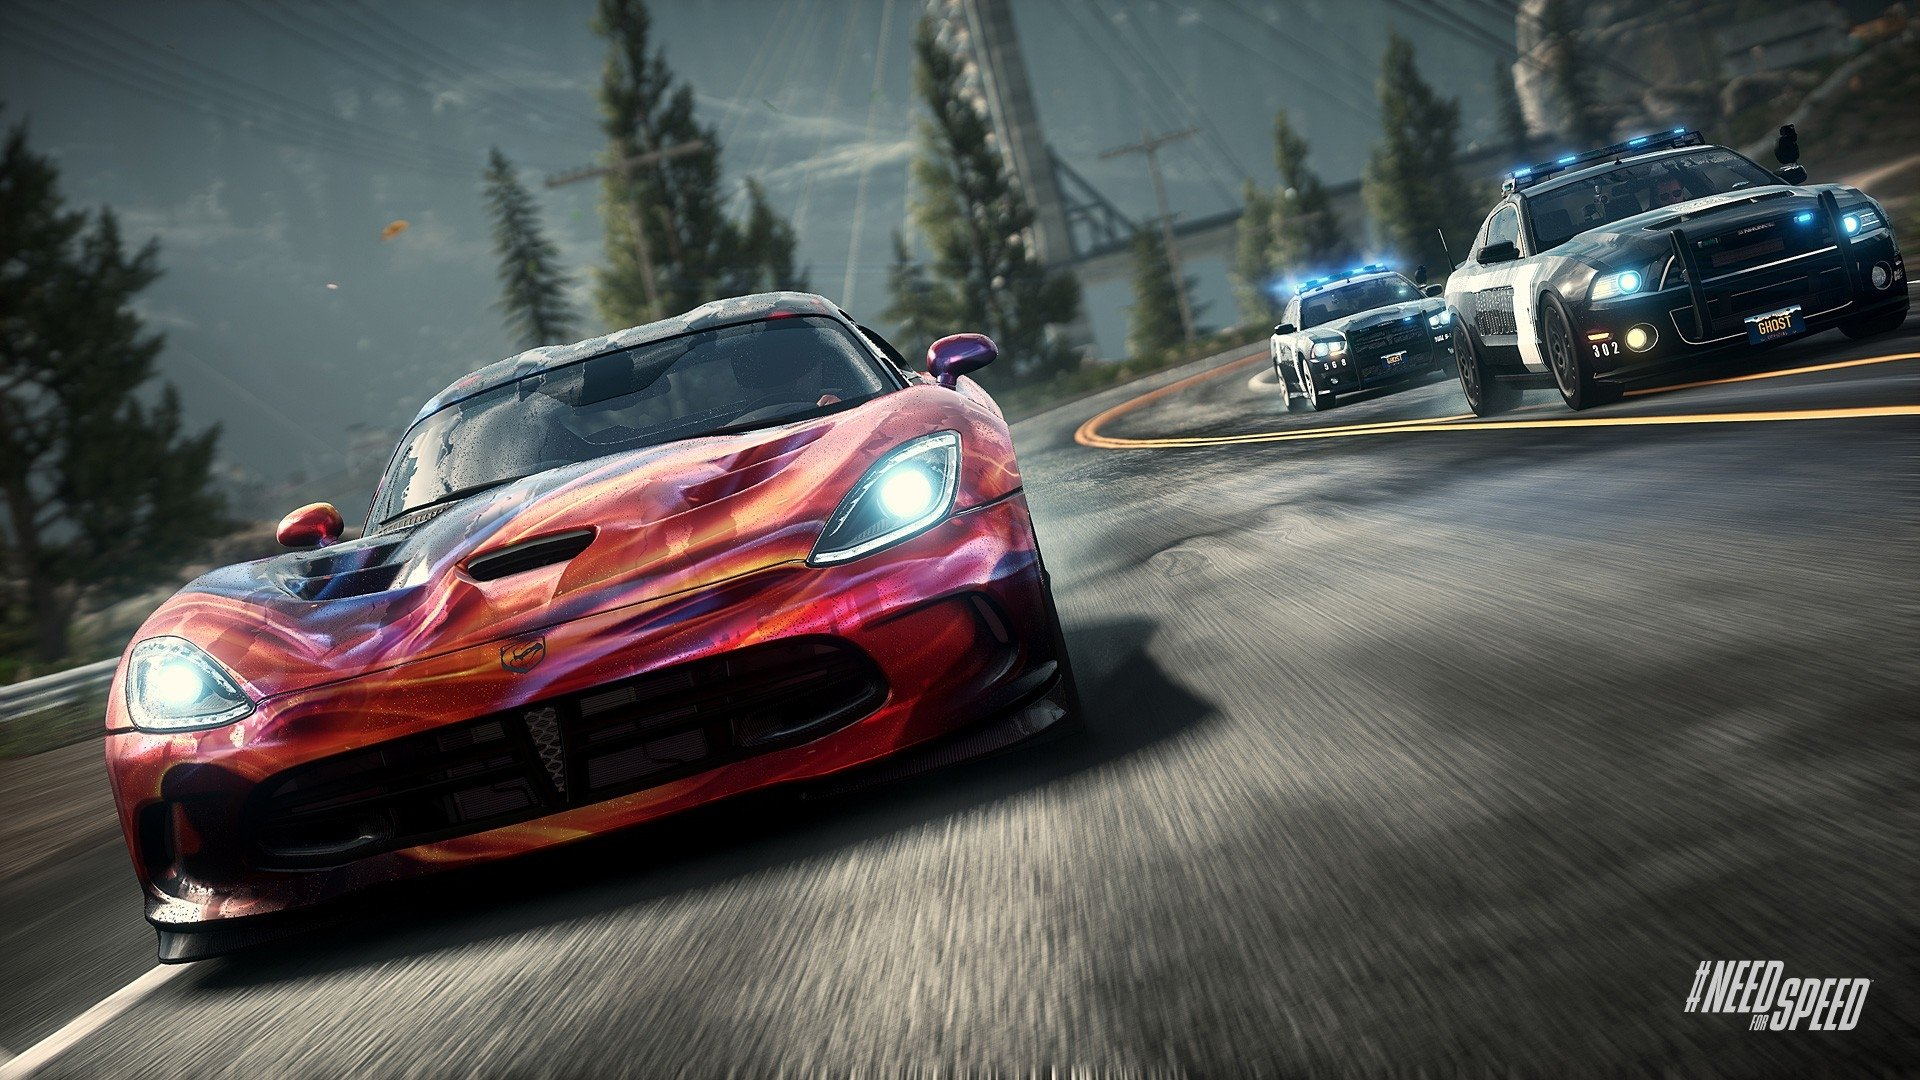 Need For Speed: Rivals HD Wallpaper | Background Image ...Nfs Rivals Wallpaper Hd